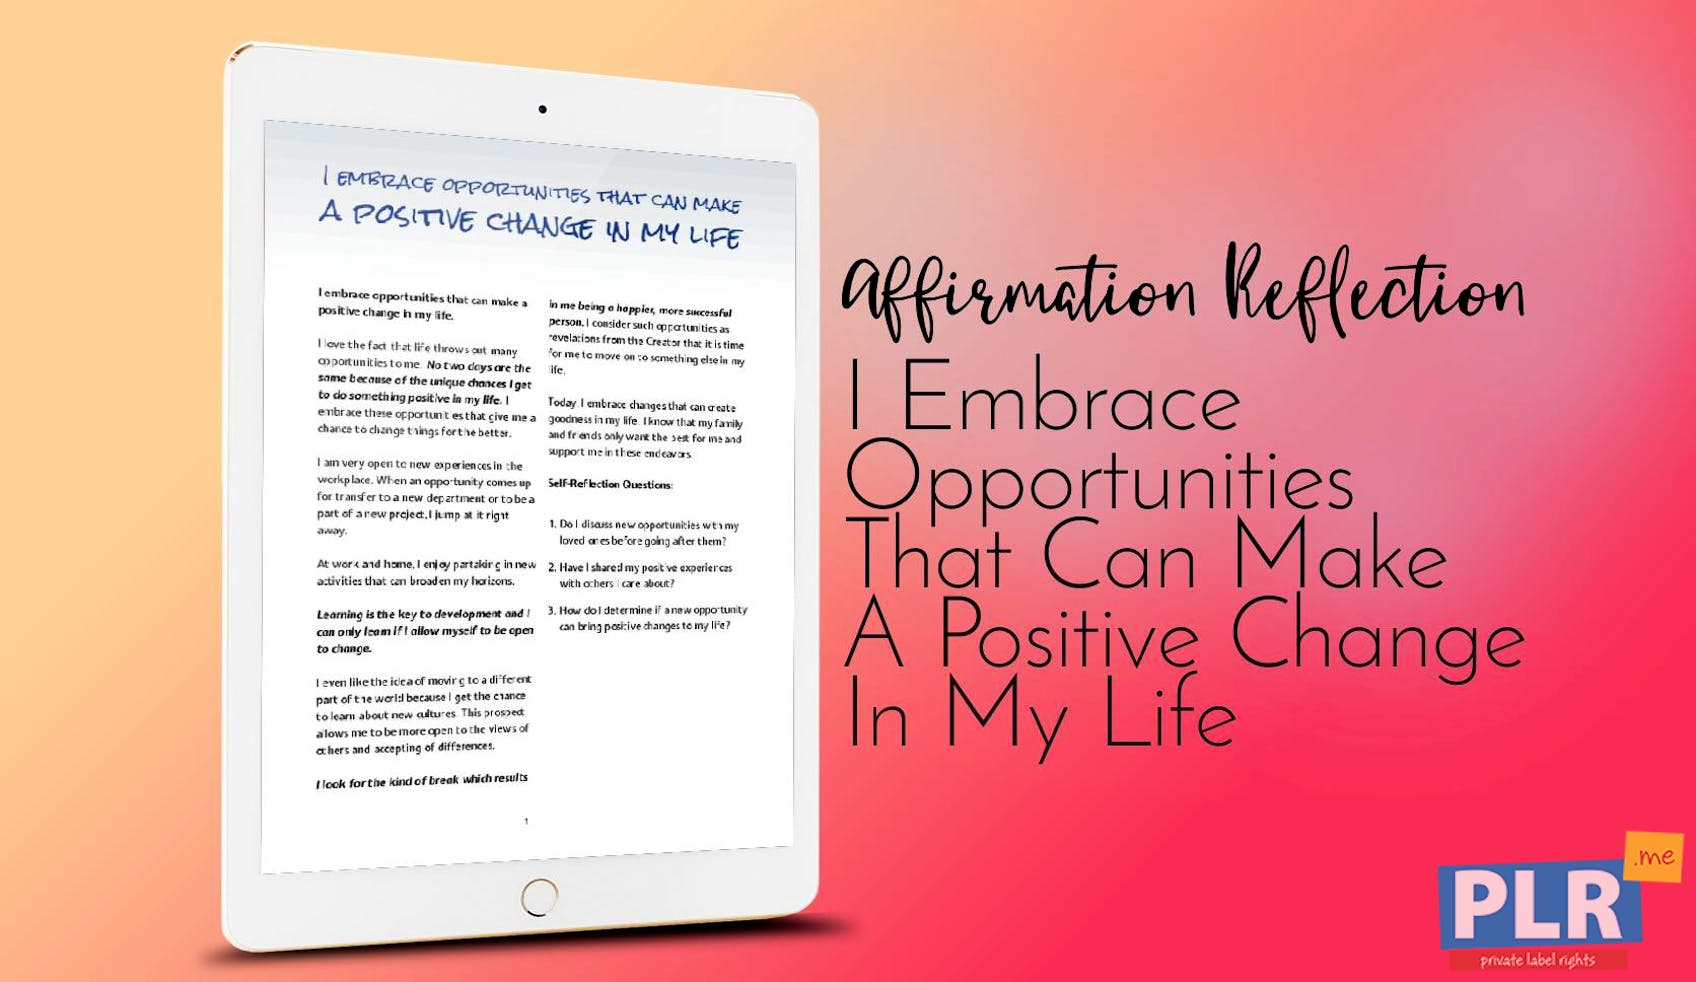 I Embrace Opportunities That Can Make A Positive Change In My Life